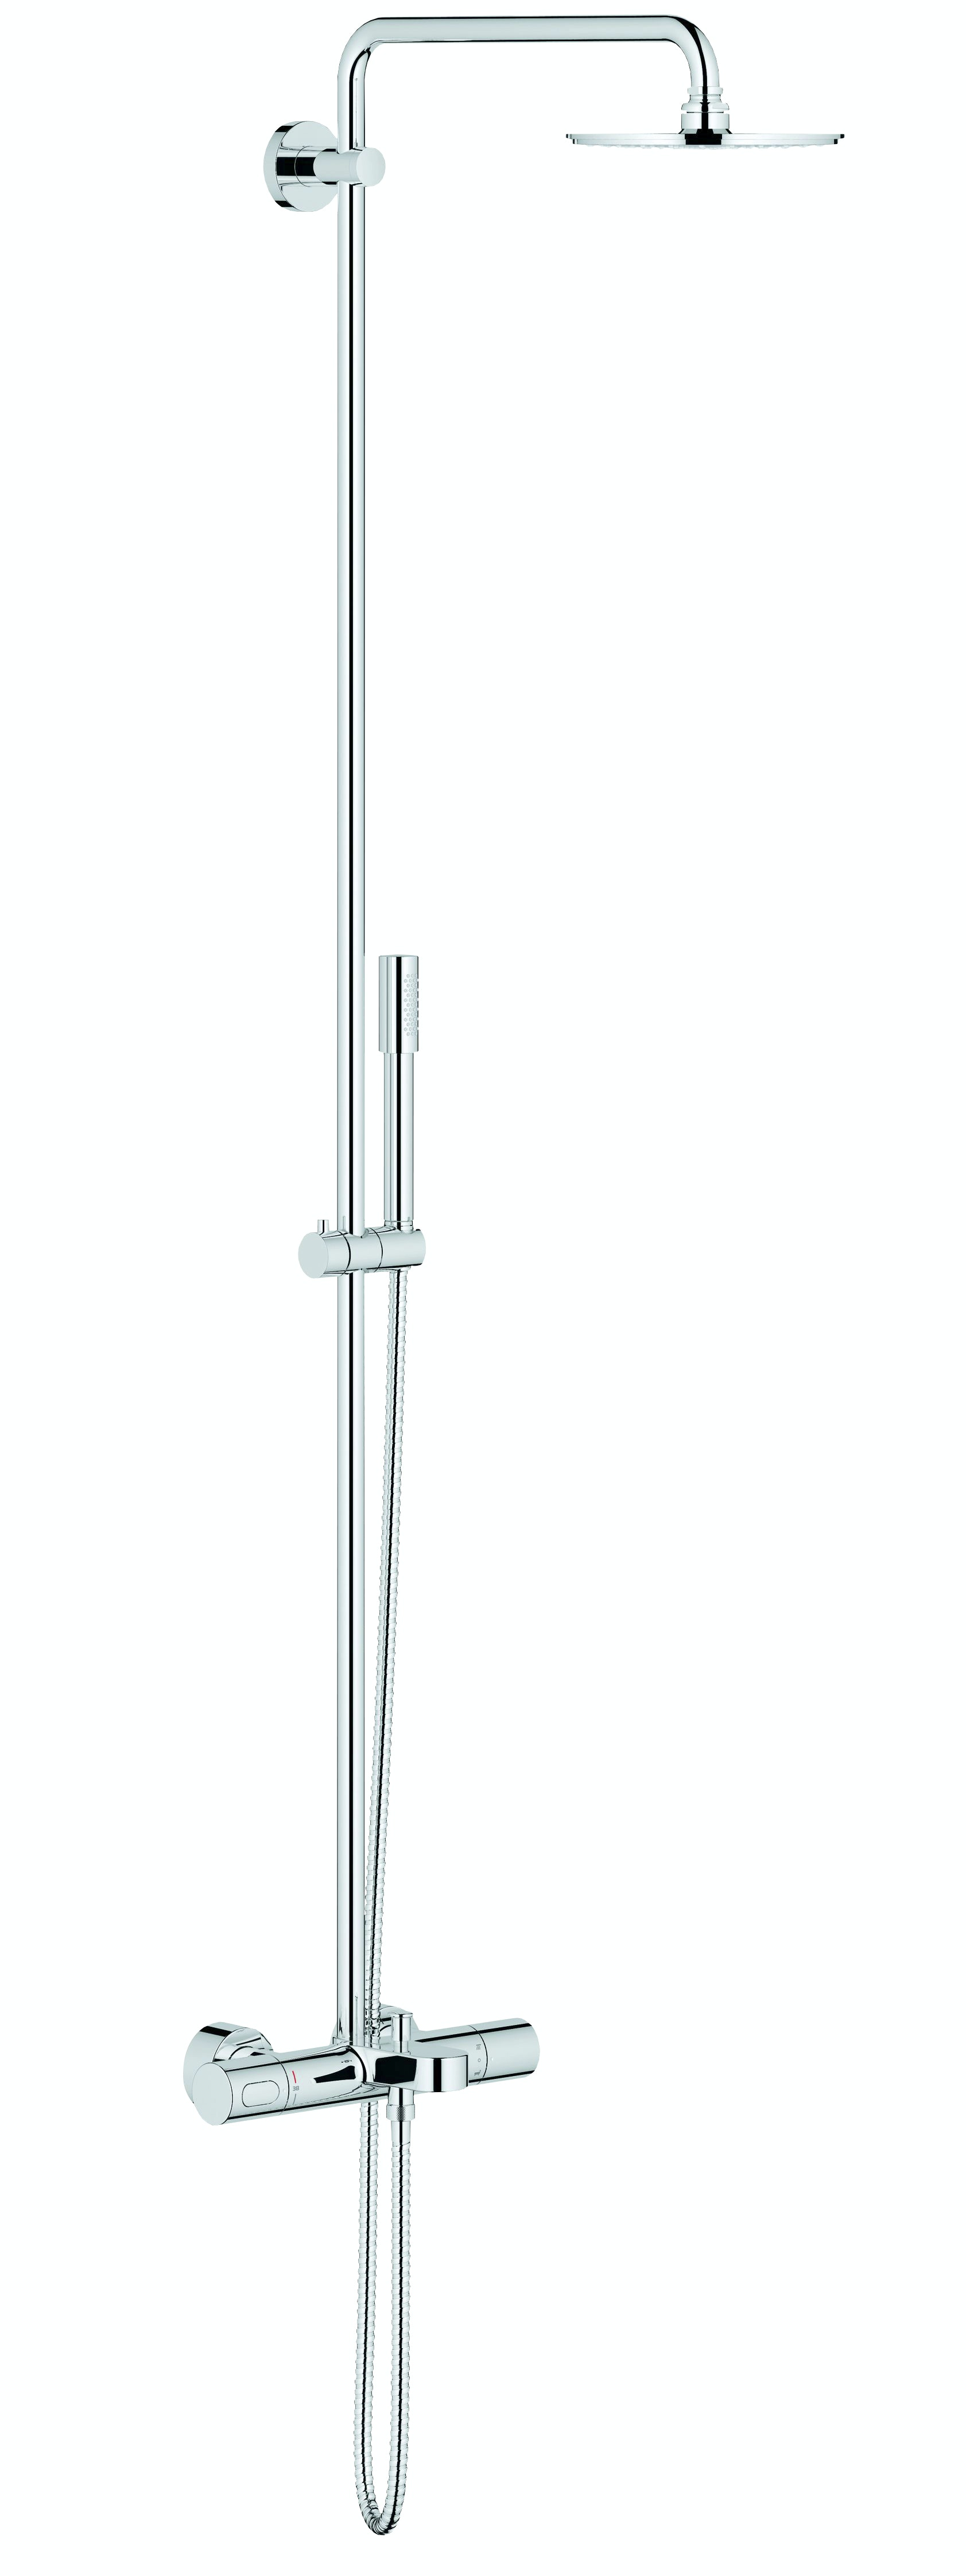 Duschsystem Grohe Rainshower 210 Bad